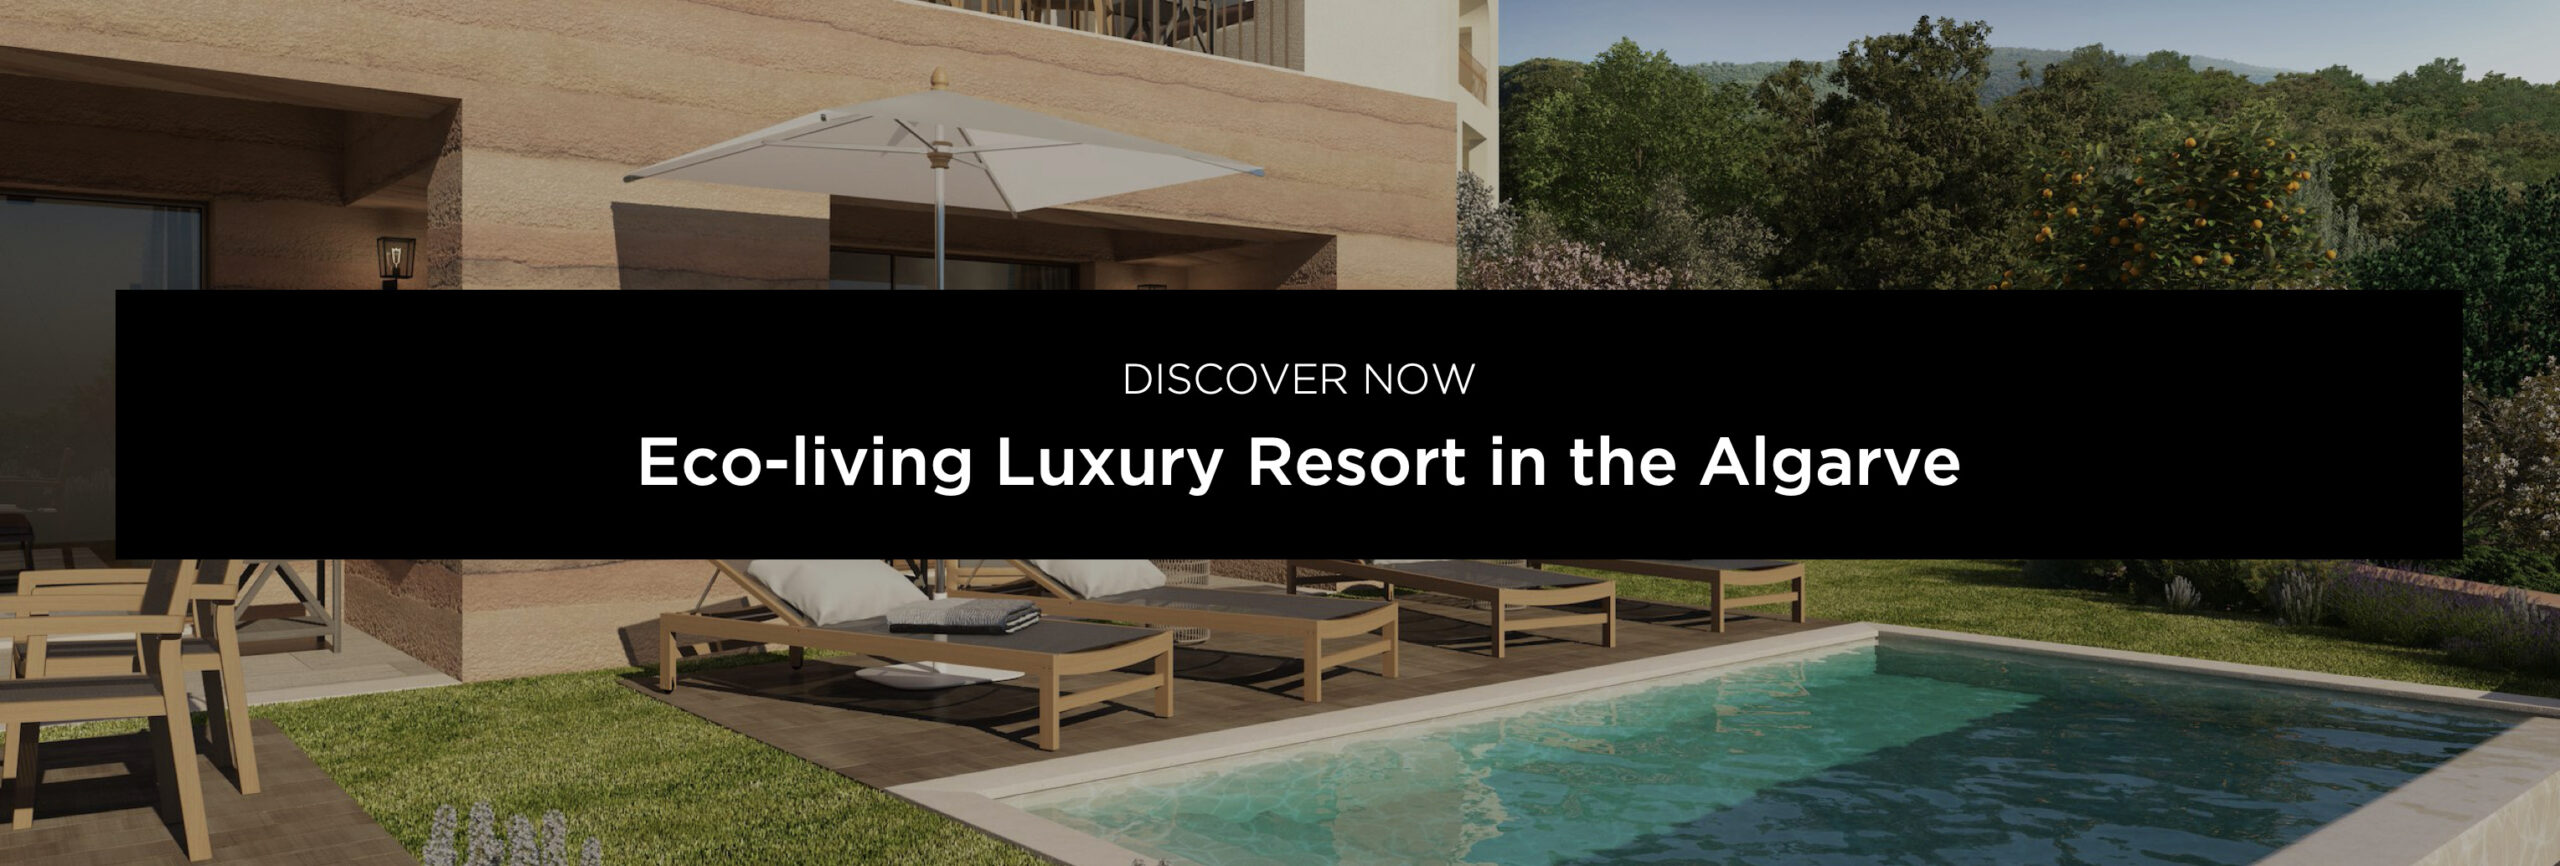 Luxury resort in the Algarve